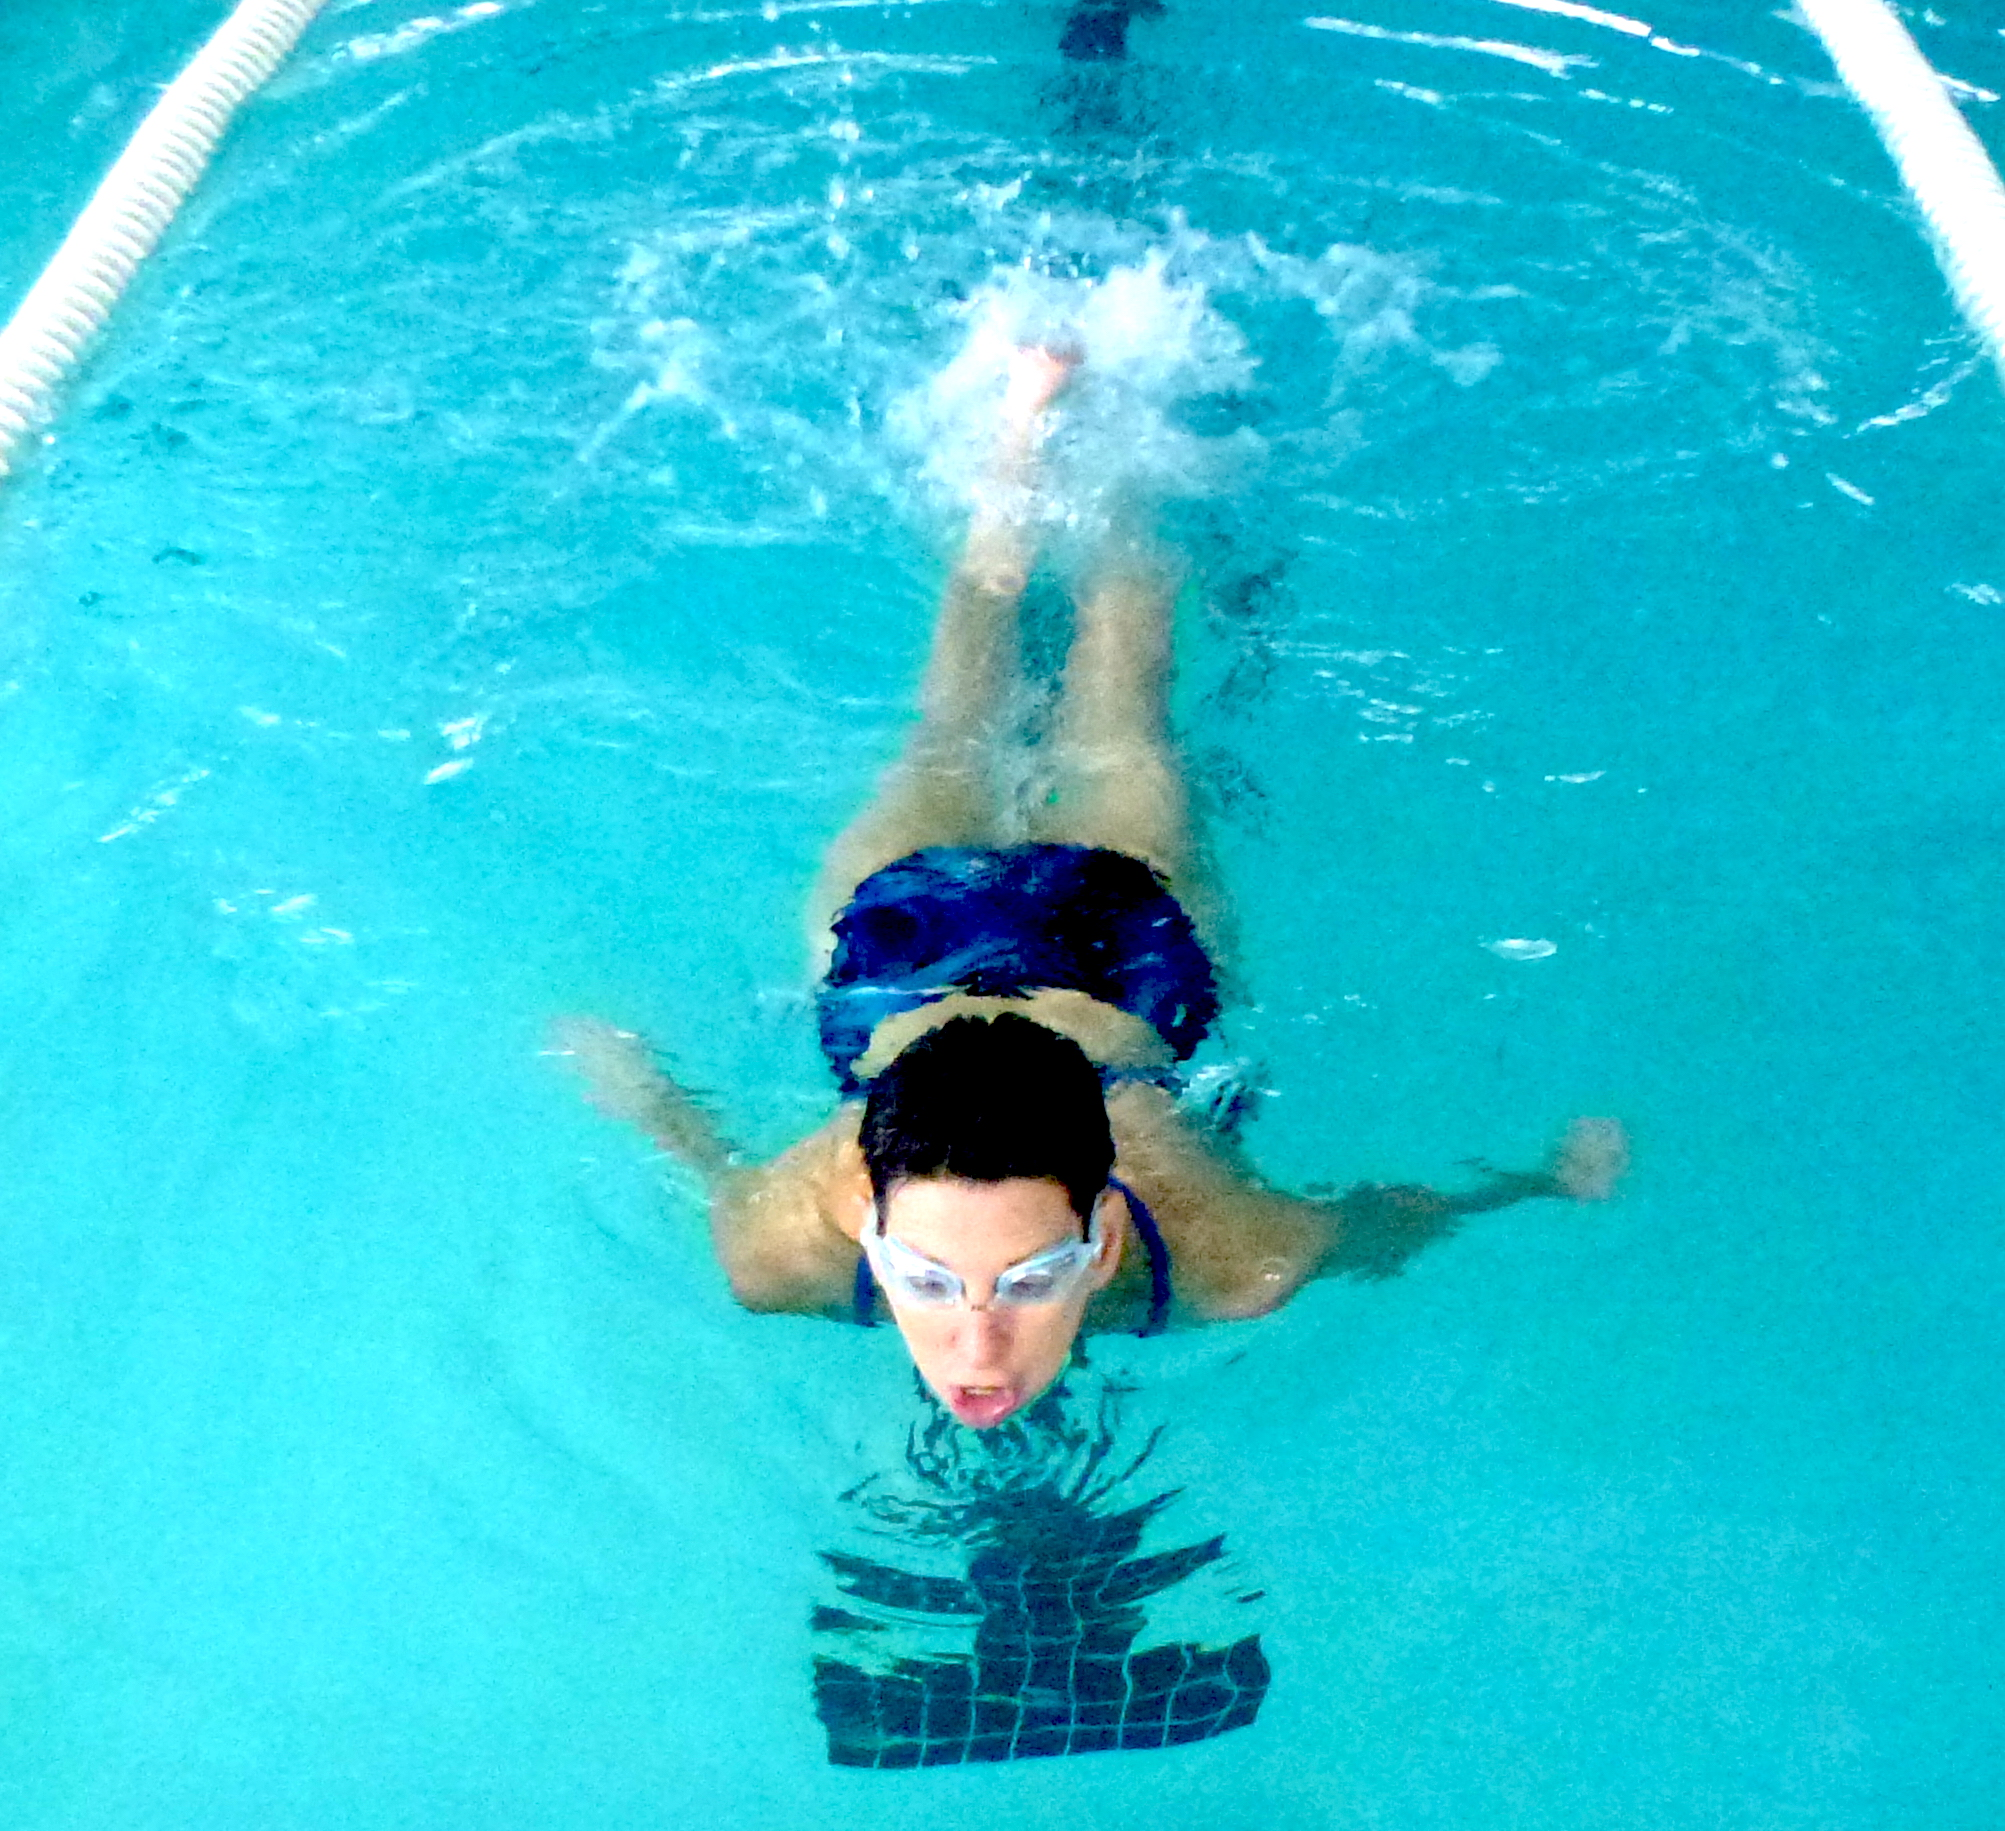 Swimming laps involves kicking only from the knee not from the hips Swimming laps involves kicking only from the knee not from the hips new picture